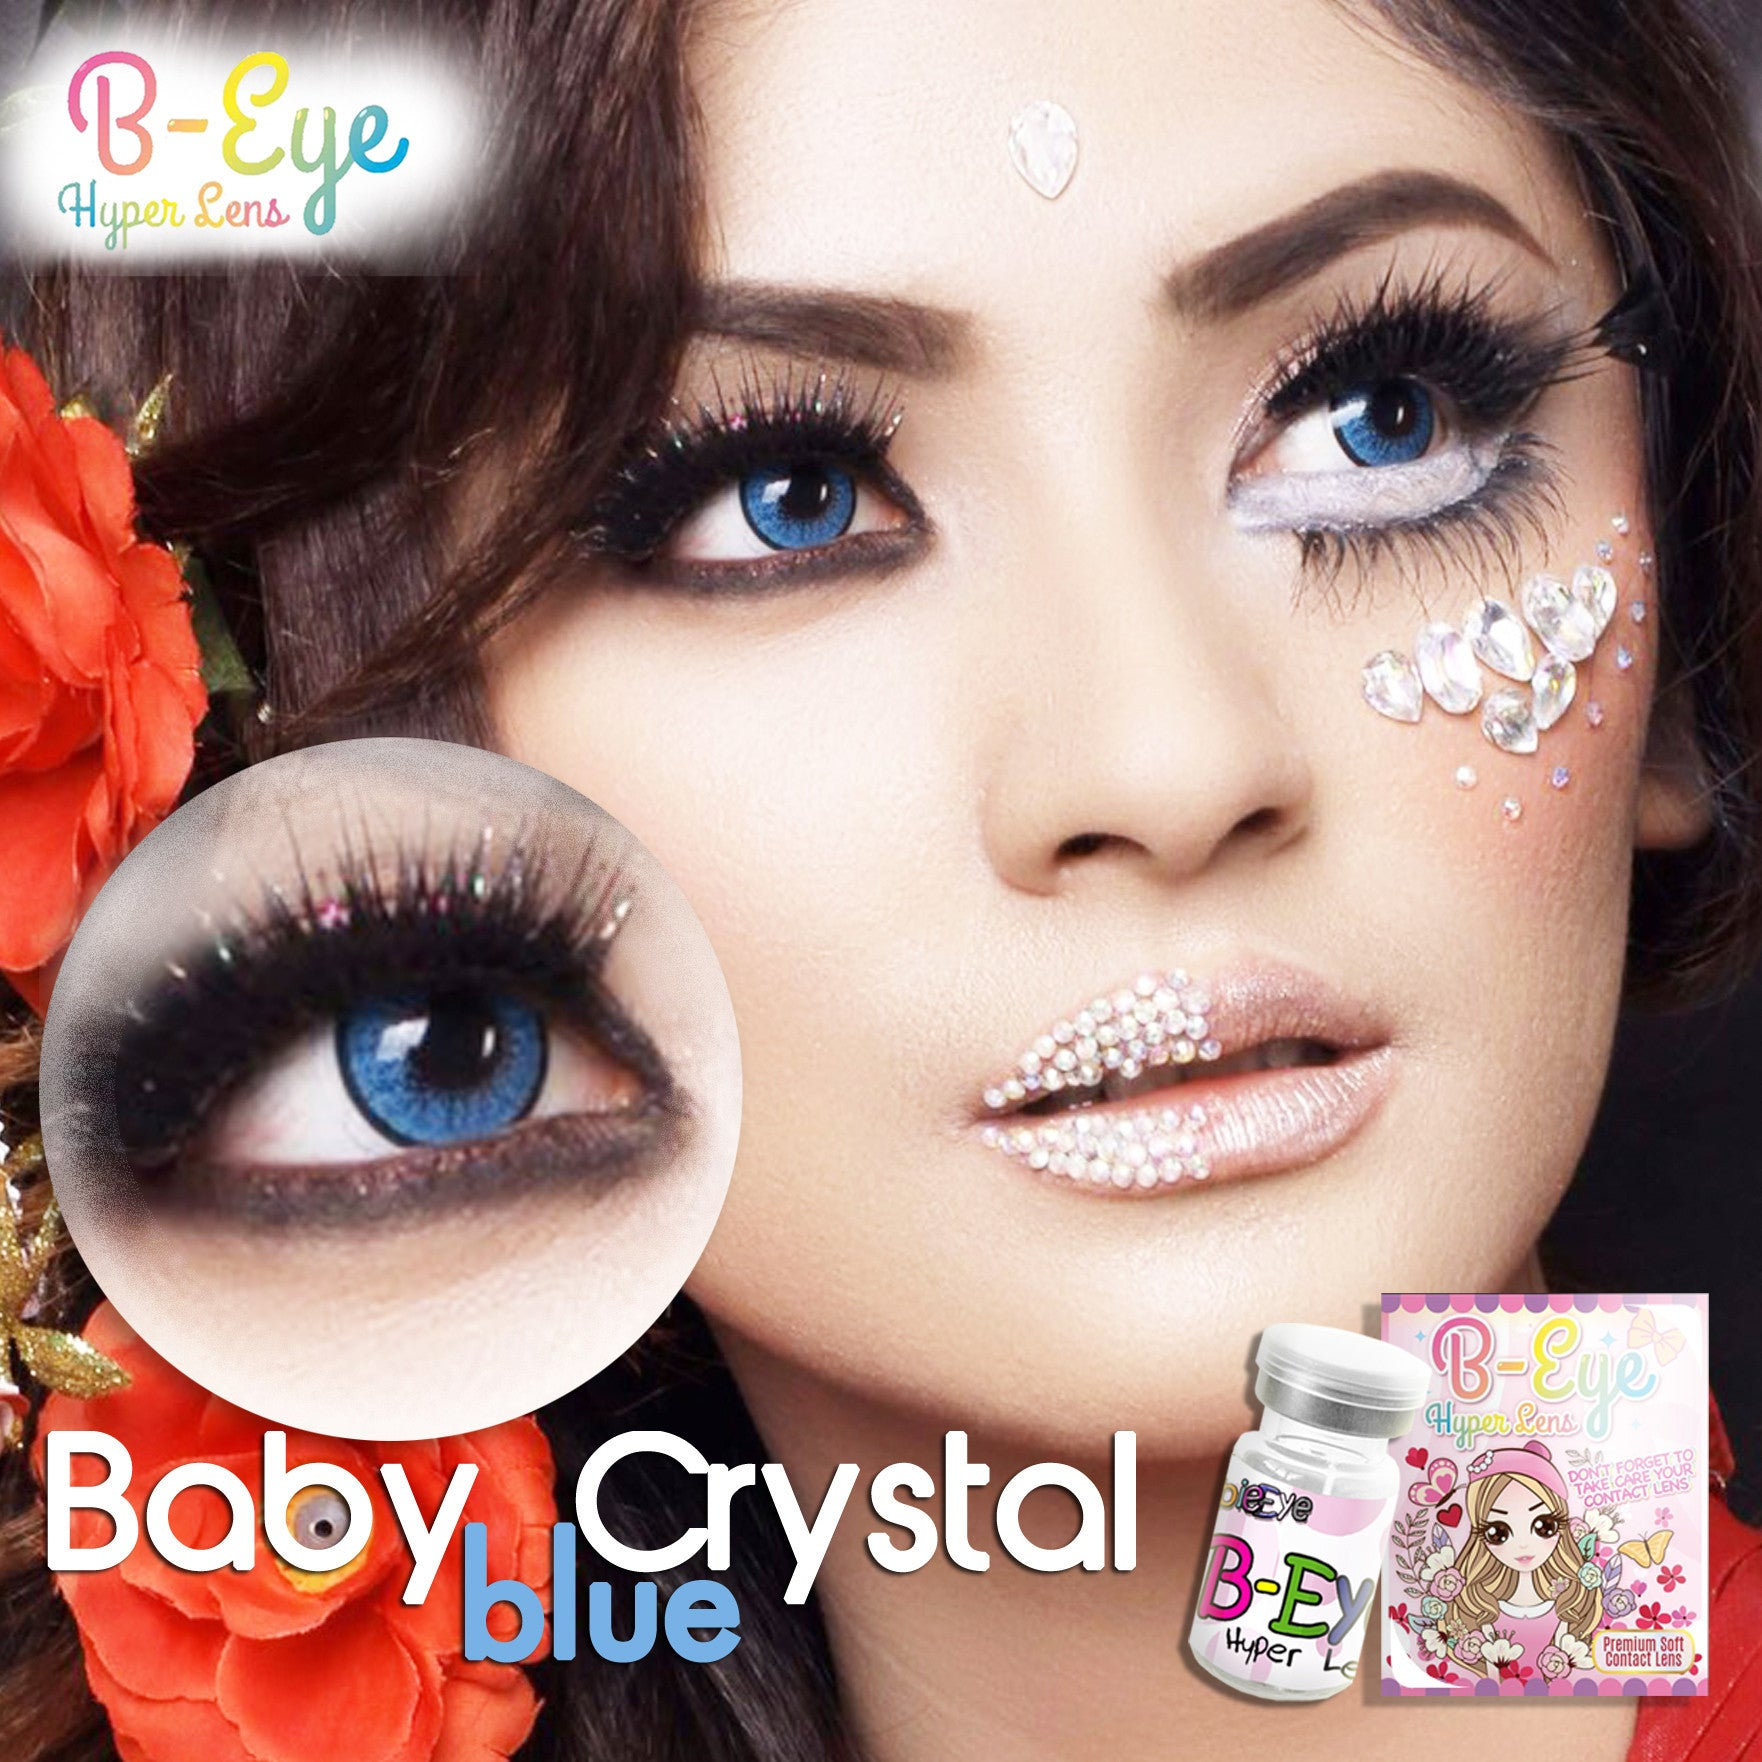 BABY CRYSTAL BLUE